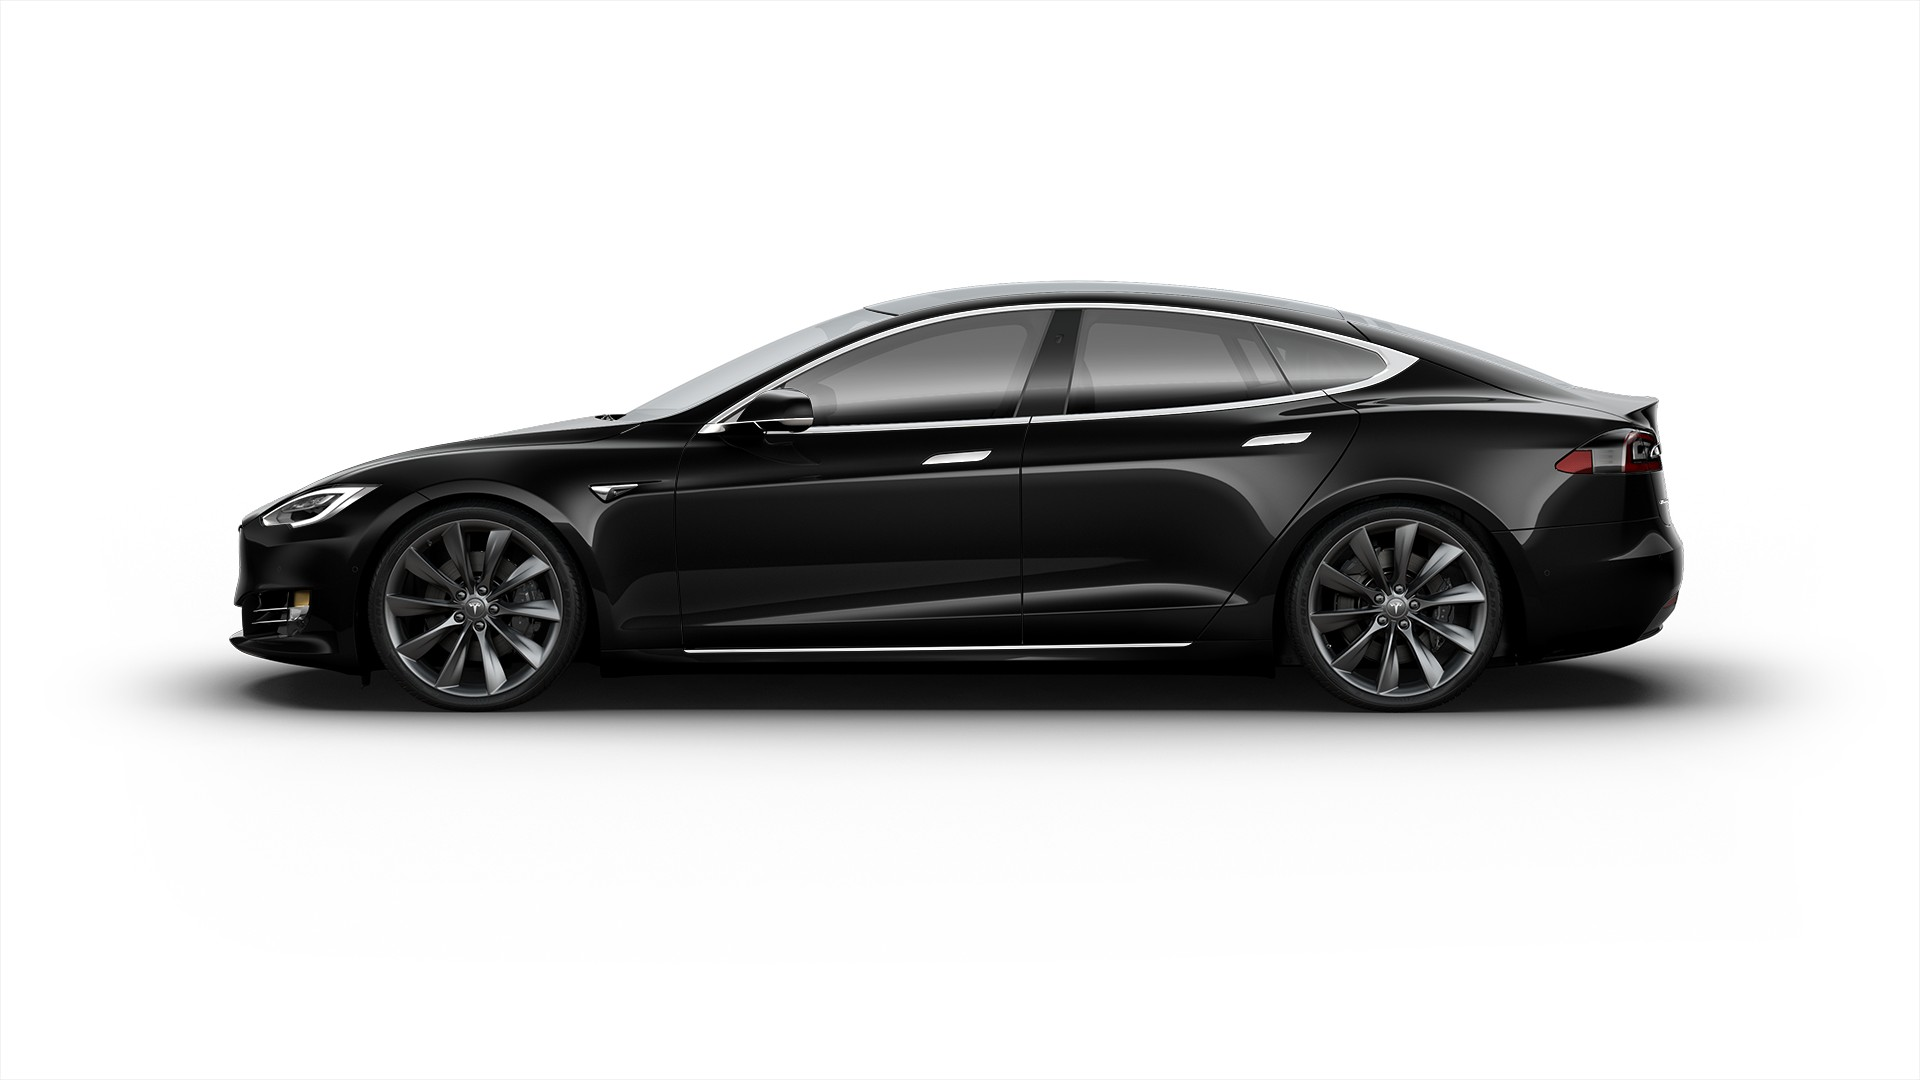 2017 tesla model s 100d obsidian black metallic paint vin. Black Bedroom Furniture Sets. Home Design Ideas